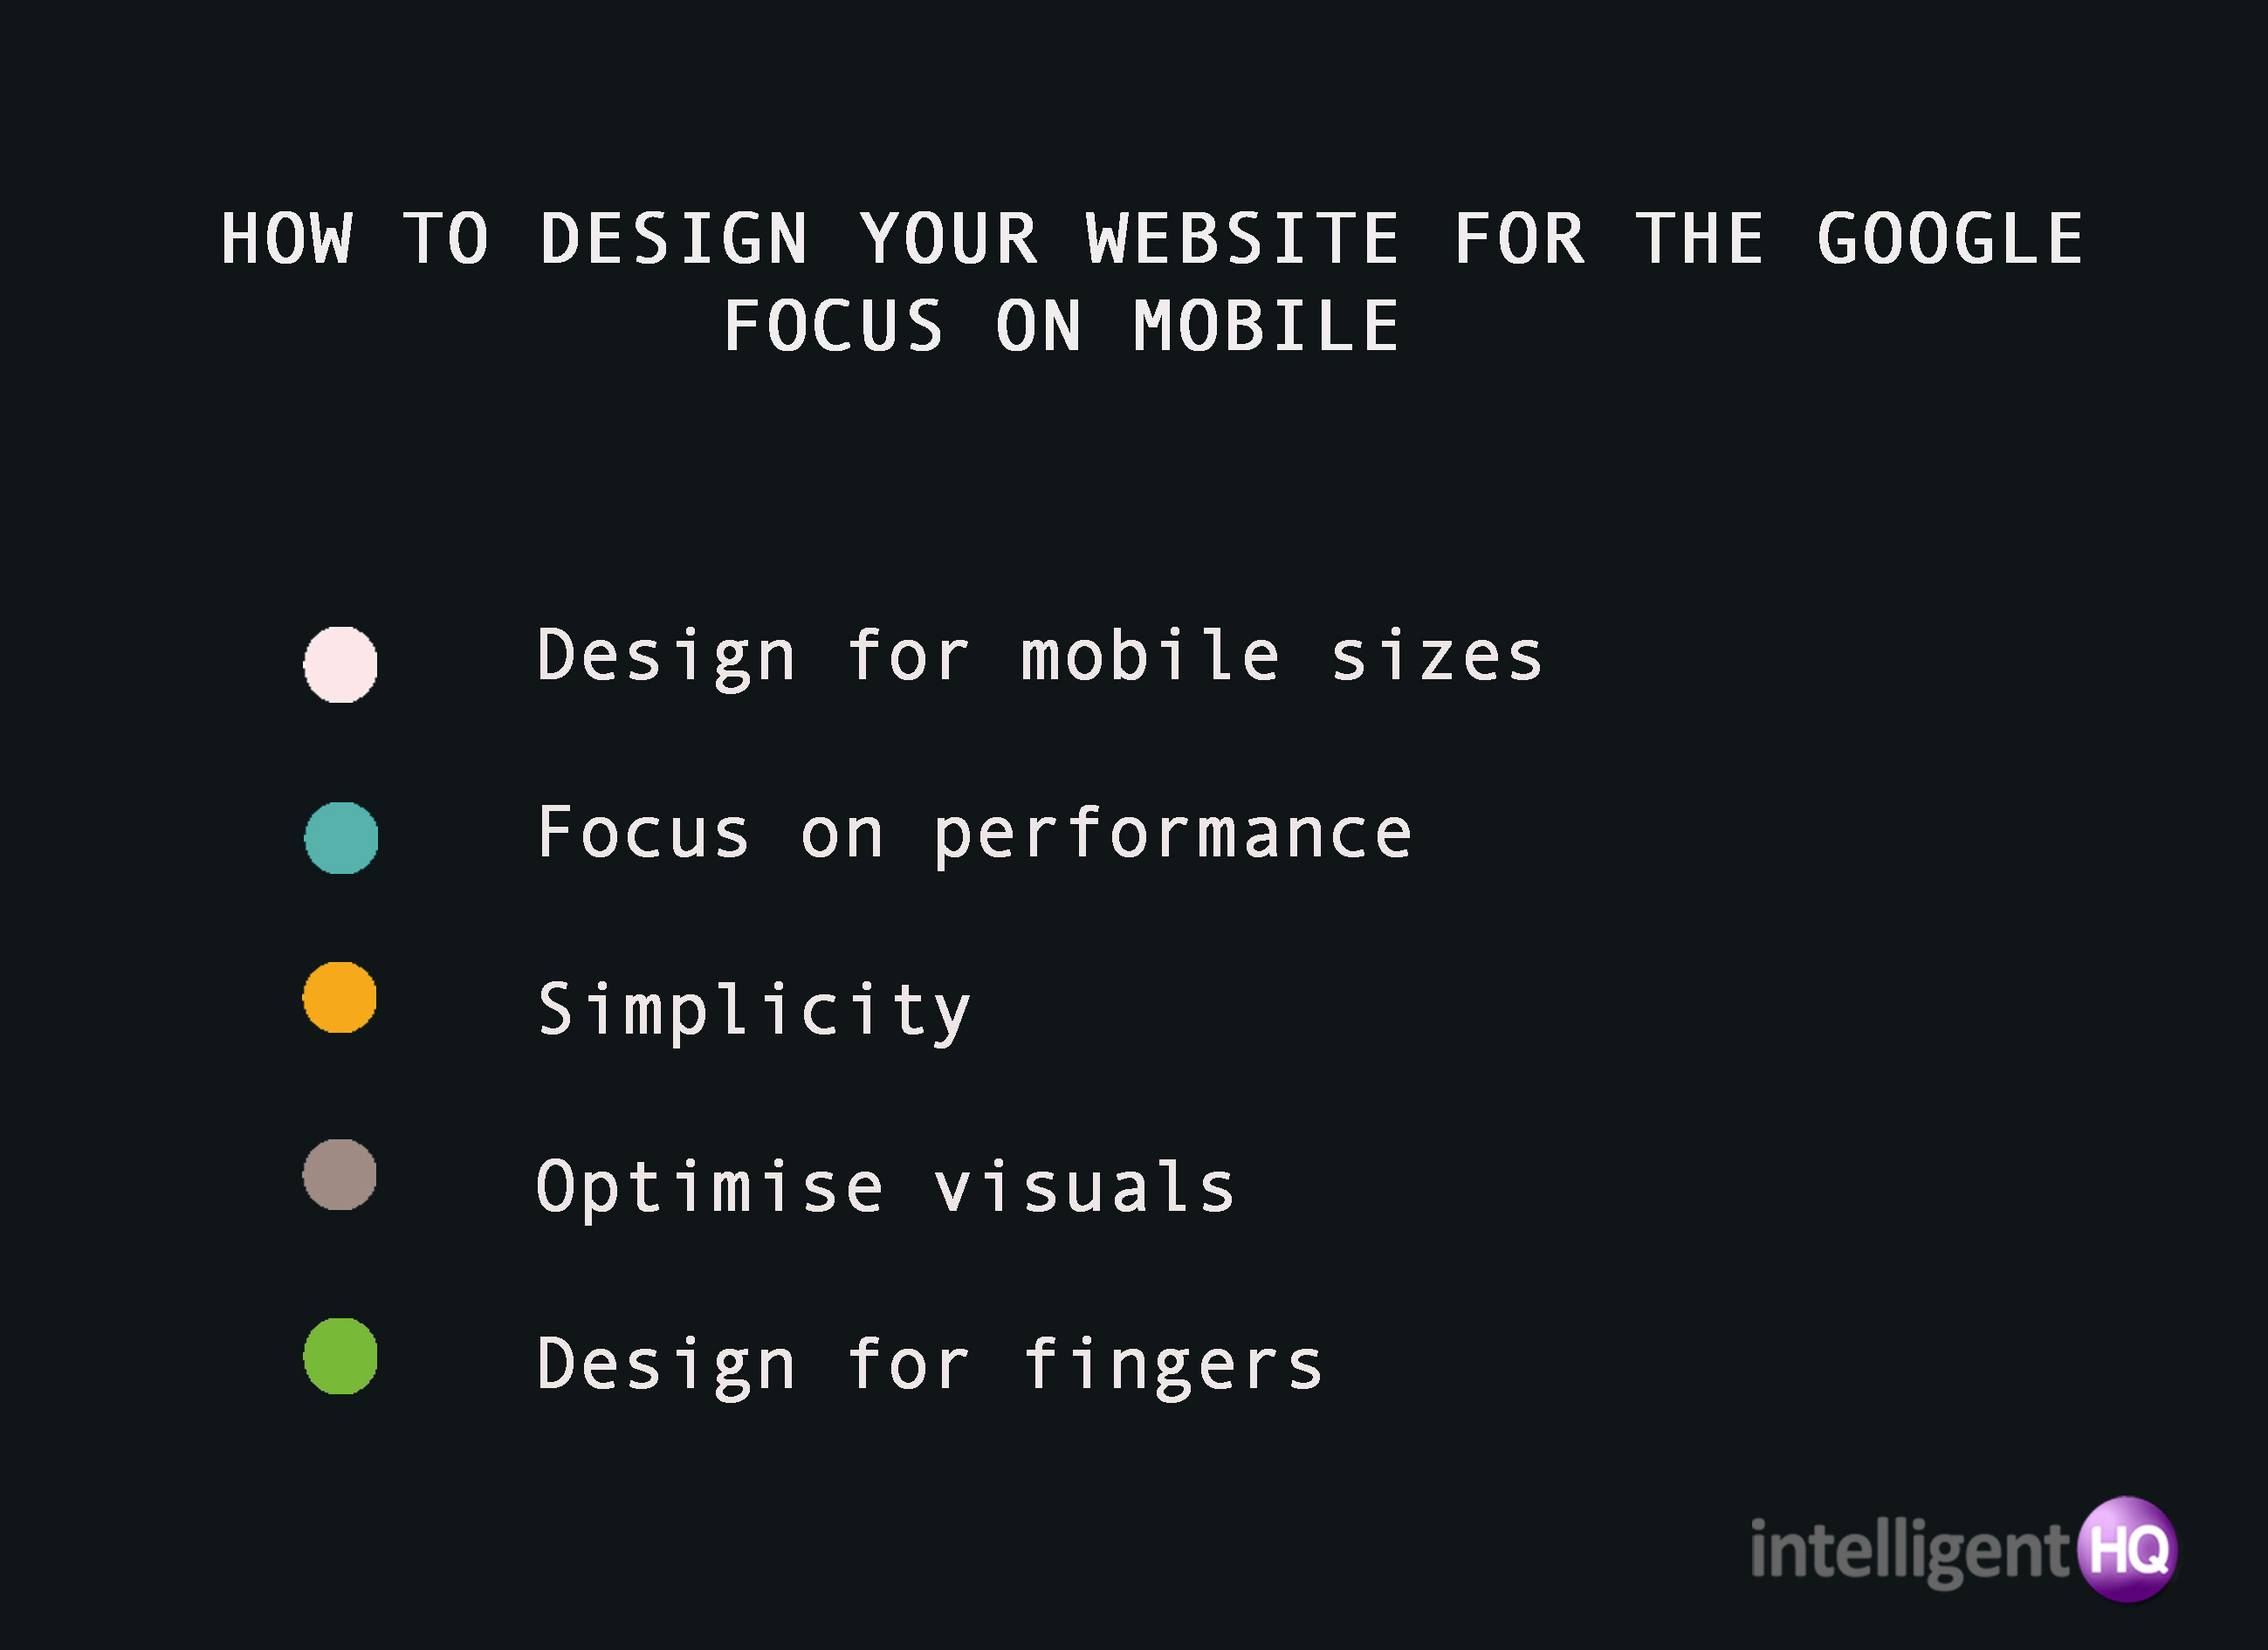 Designing Your Website For The Google Focus on Mobile